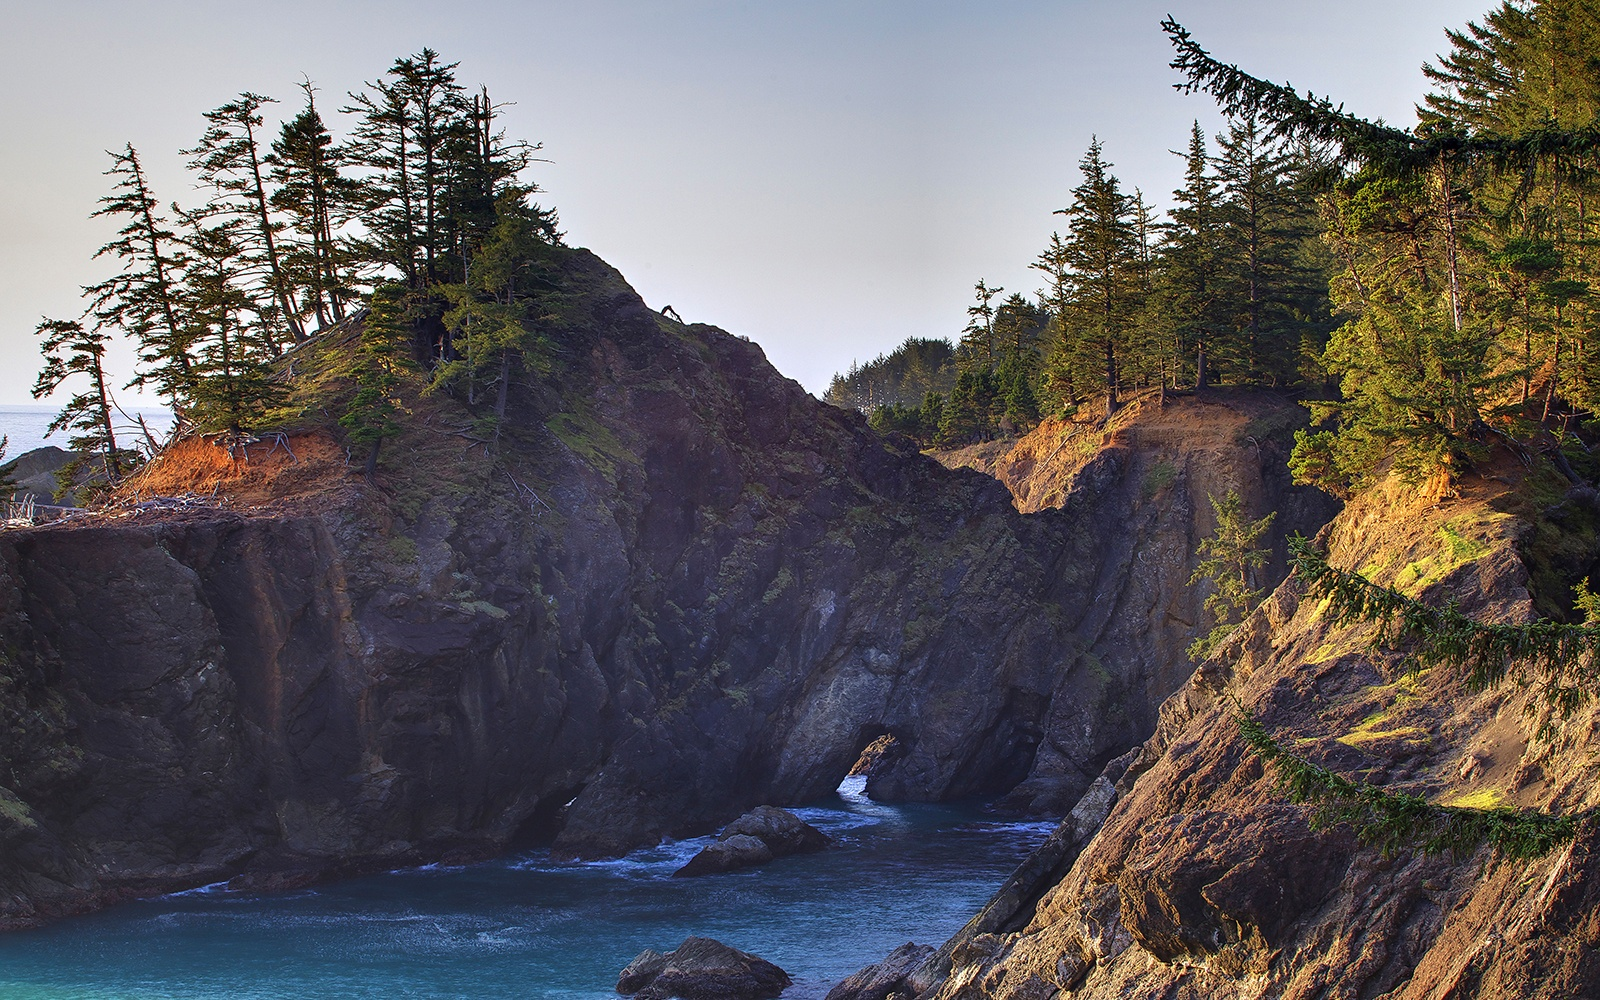 Cape Perpetua Campground, Siuslaw National Forest, Oregon